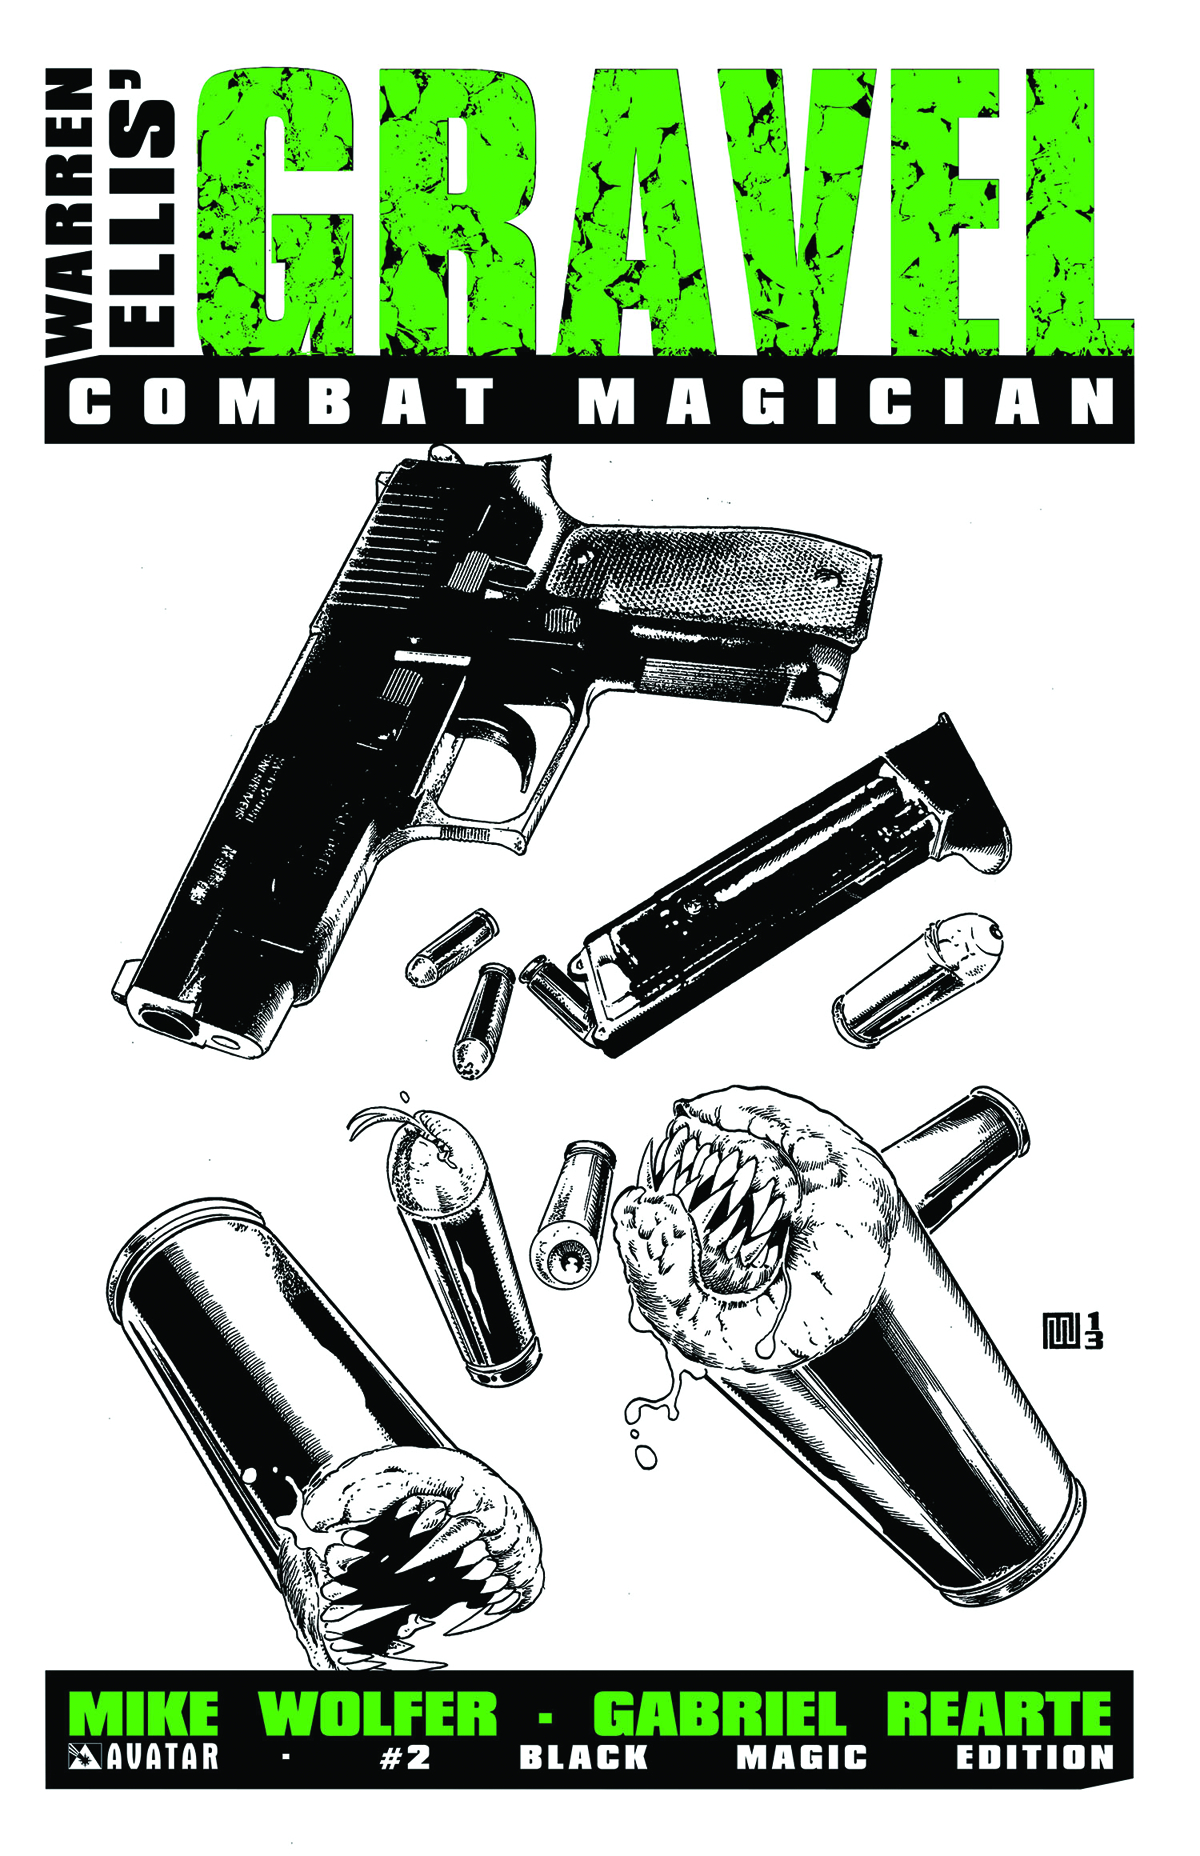 GRAVEL COMBAT MAGICIAN #2 BLACK MAGIC RETAILER ORDER INCV